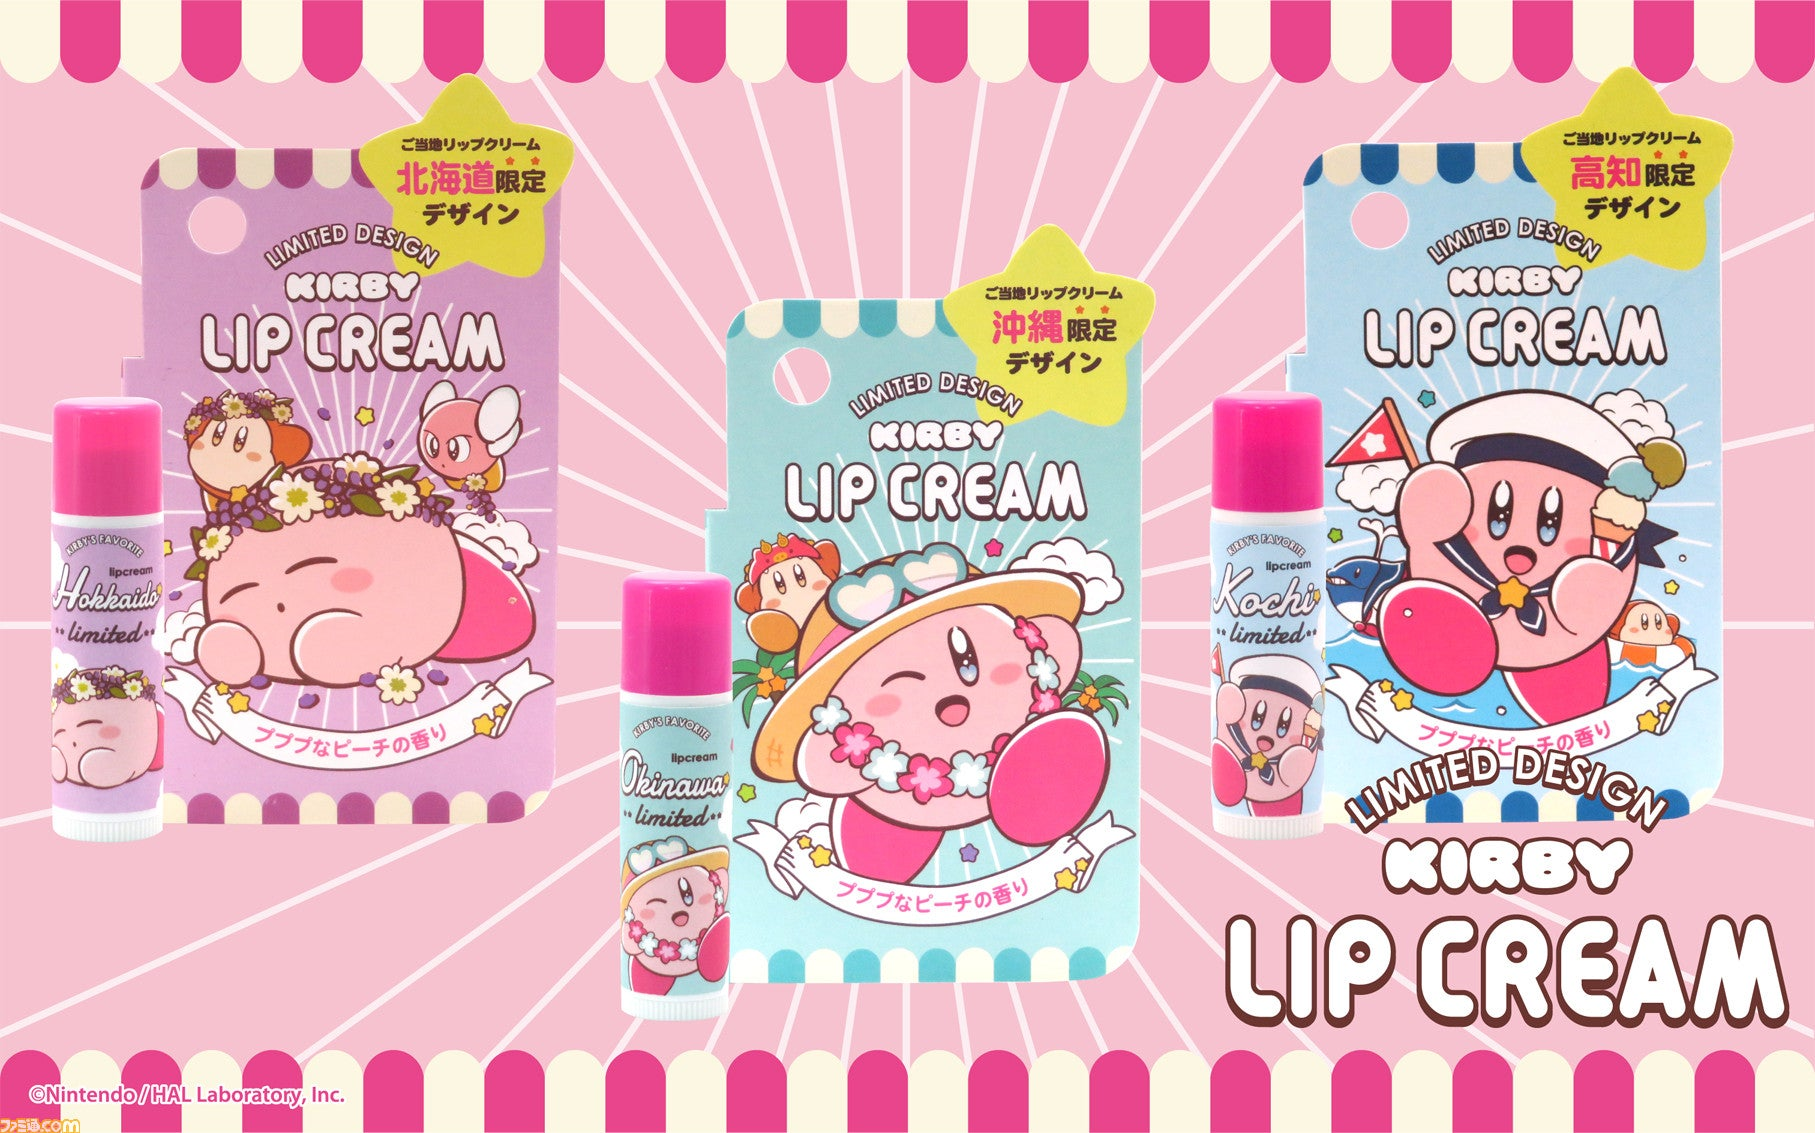 Kirby limited design lip balm - Mt. Fuji